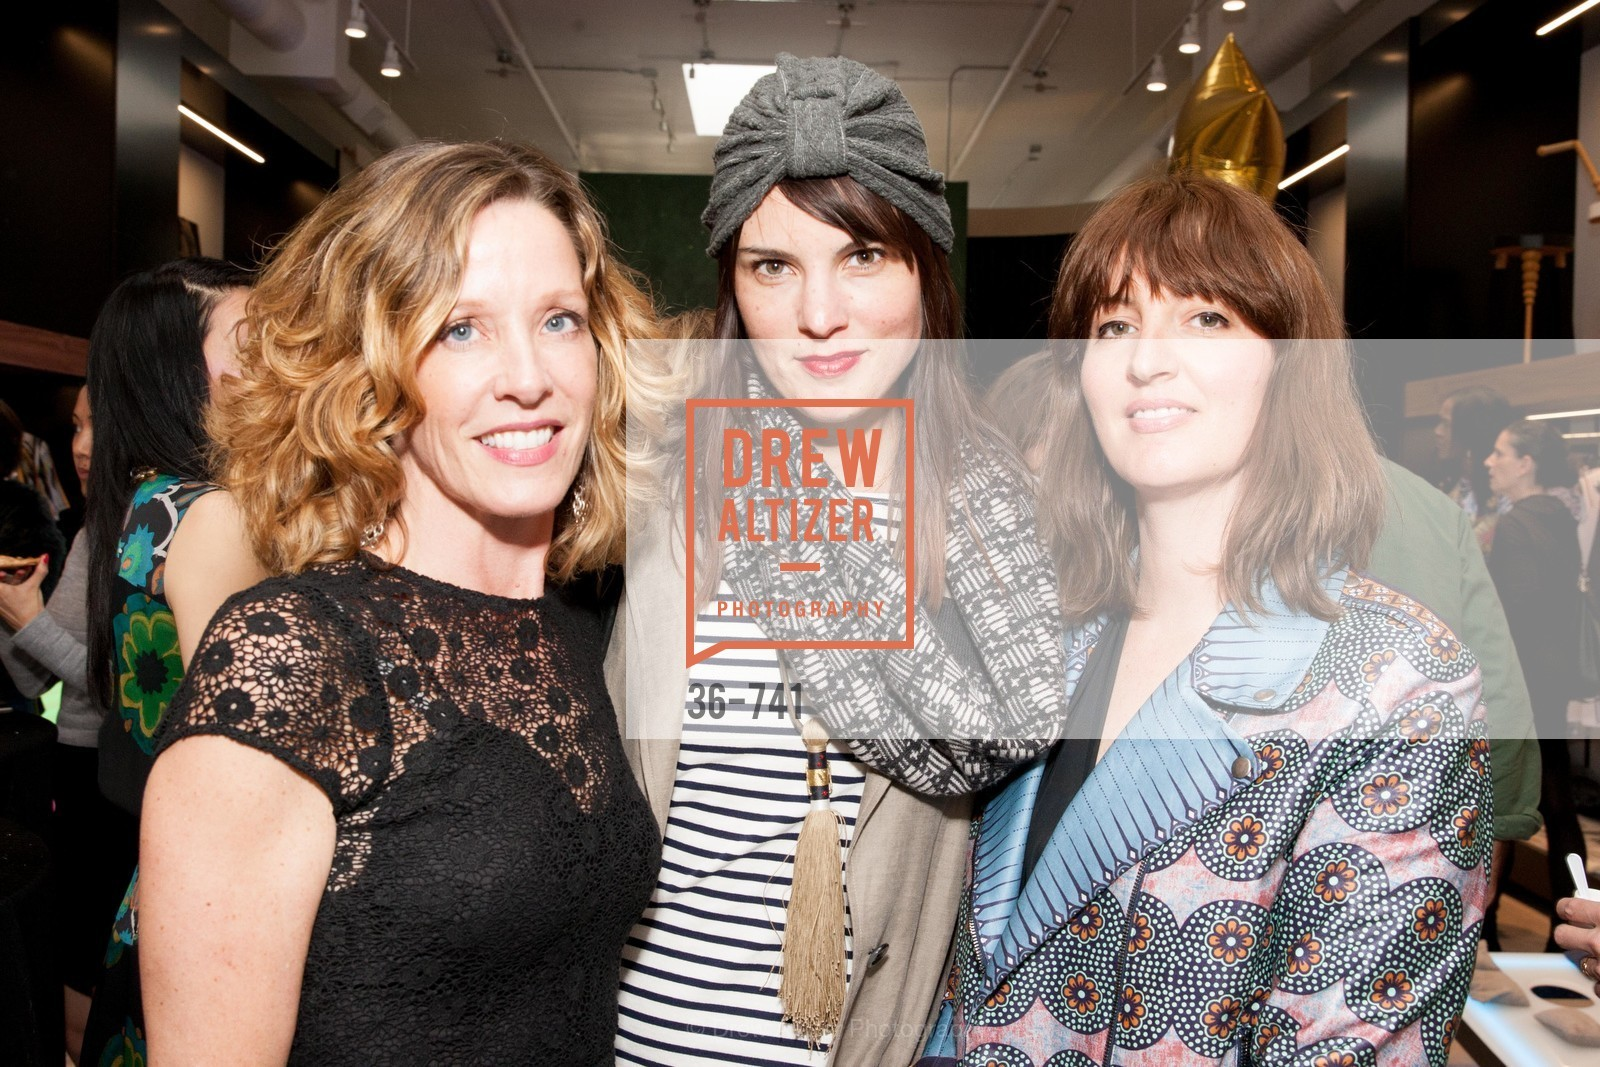 Carol Wills, Lauren Podoll, Trina Patini, BETTY LIN STORE Opening, US, May 21st, 2015,Drew Altizer, Drew Altizer Photography, full-service agency, private events, San Francisco photographer, photographer california